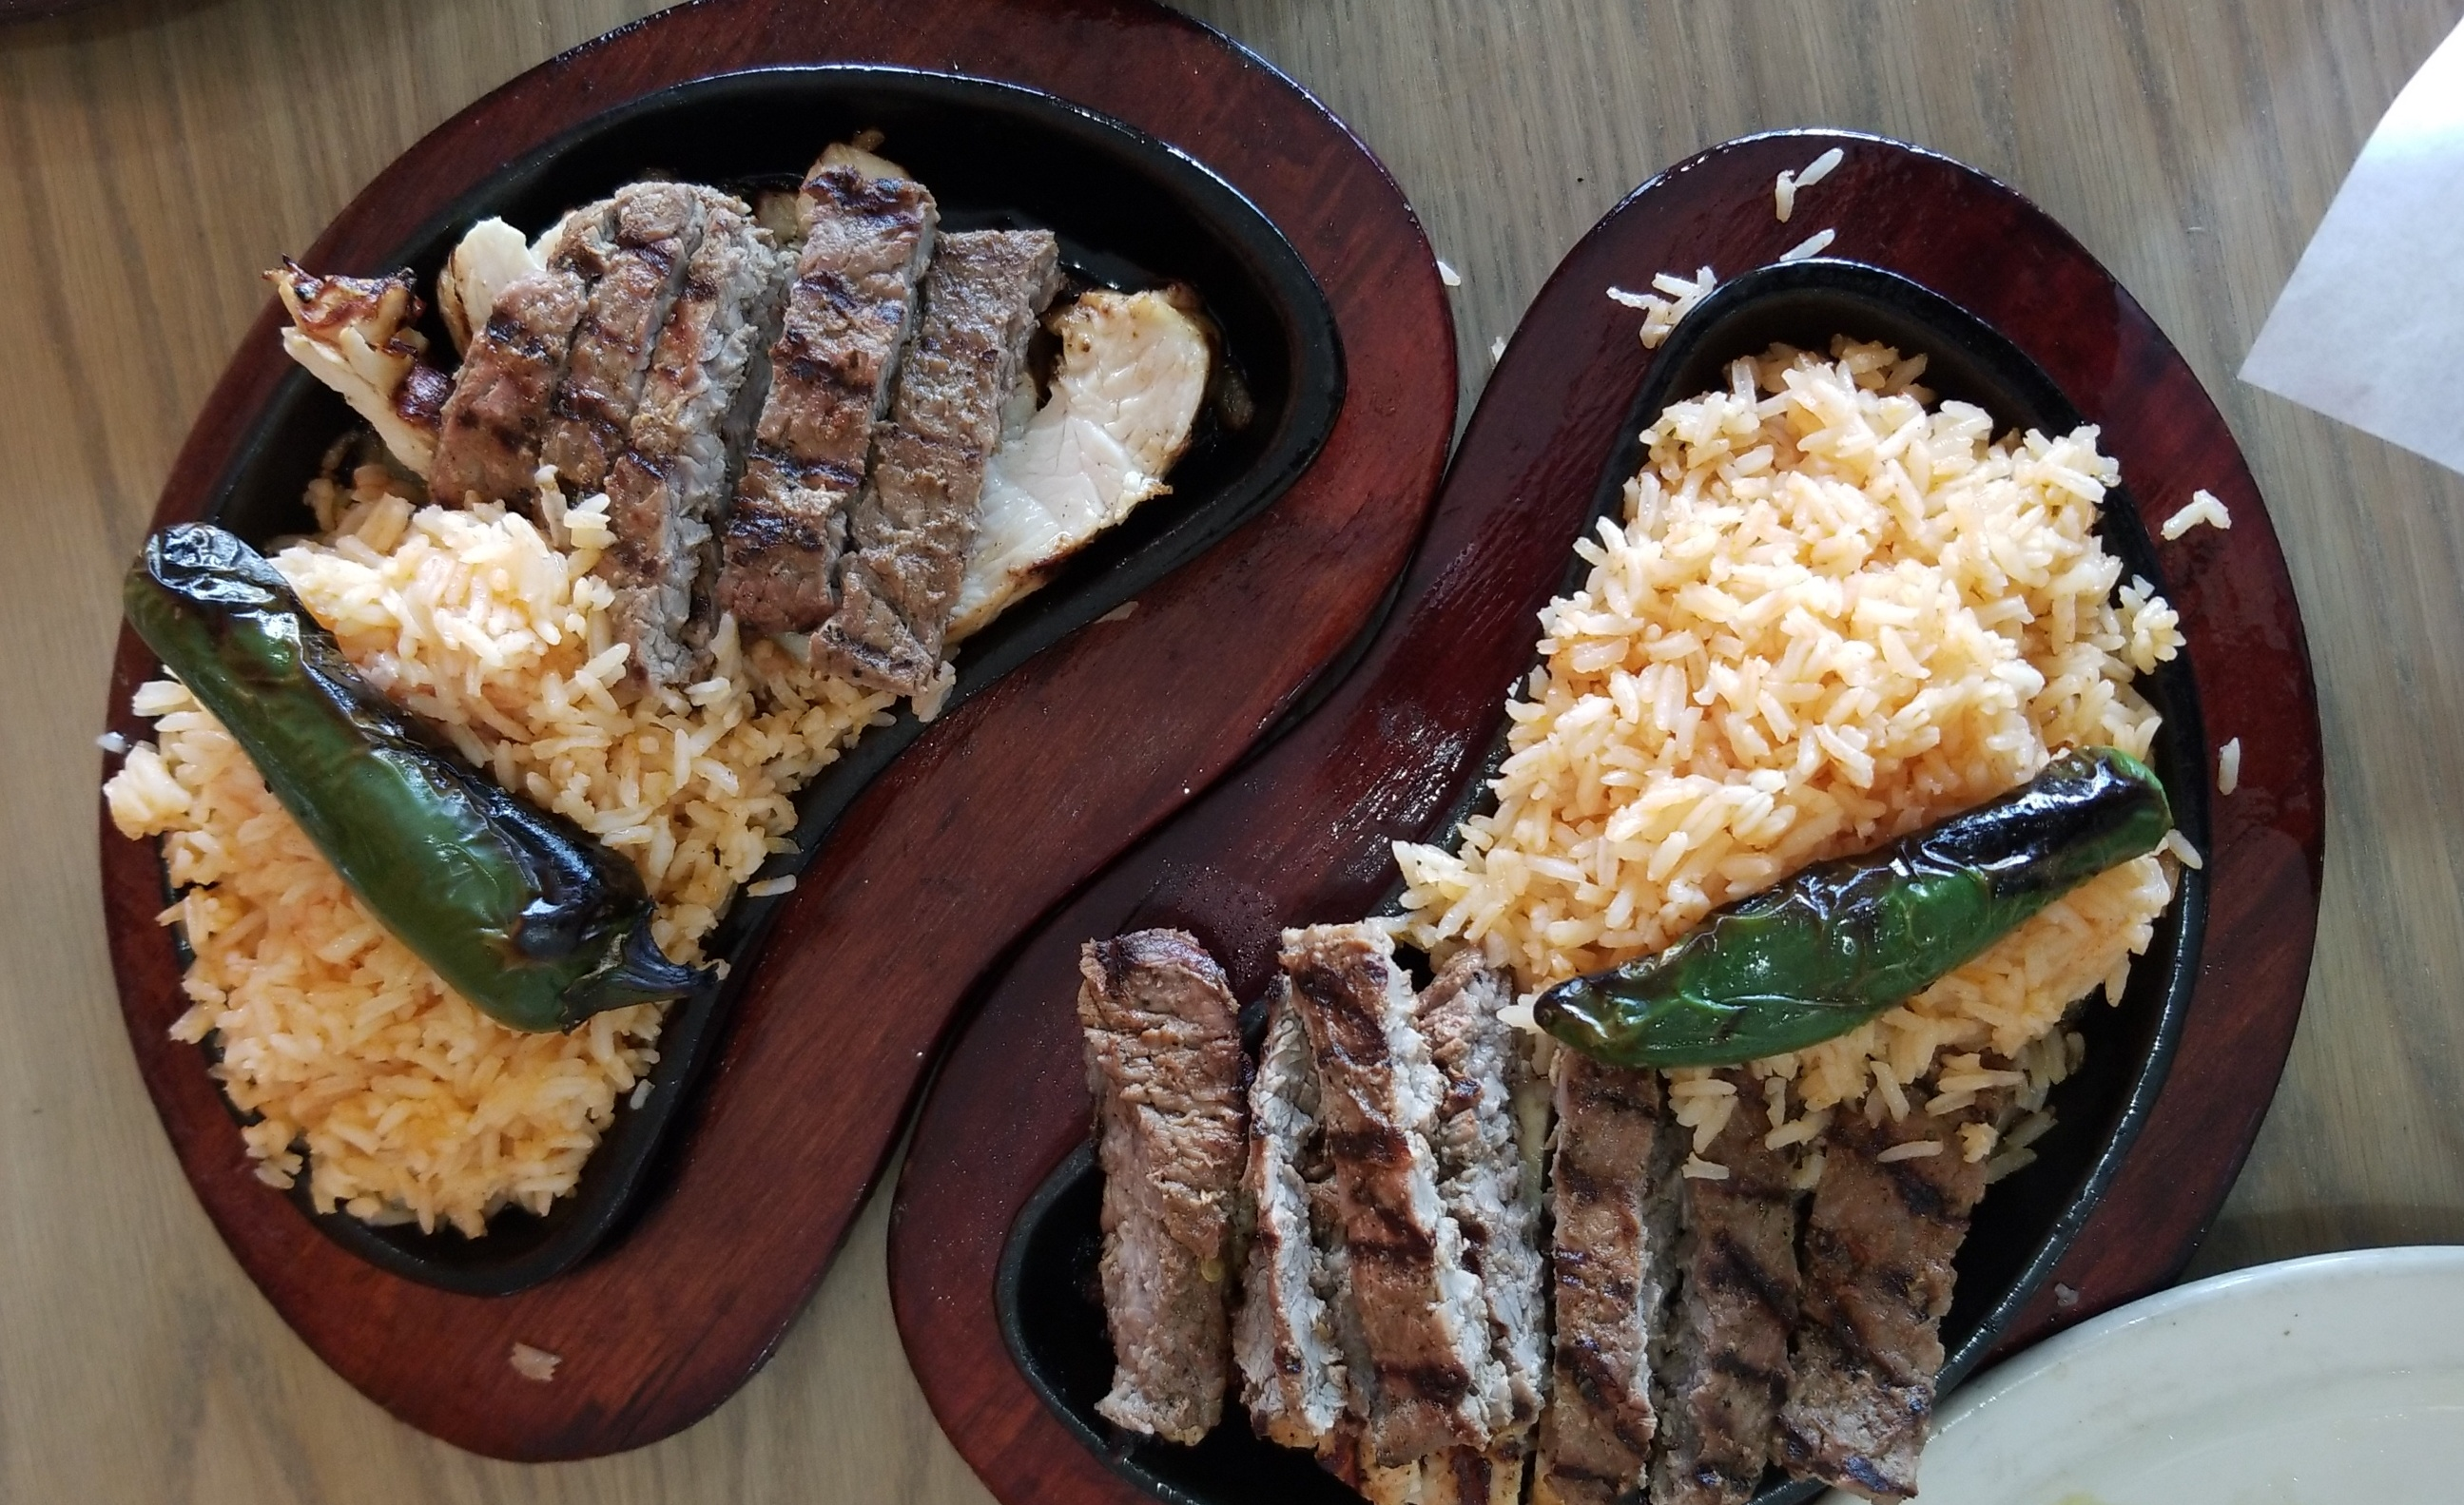 Get Free Fajitas on National Fajita Day  | Fajita Pete's Houston |GIVEAWAY